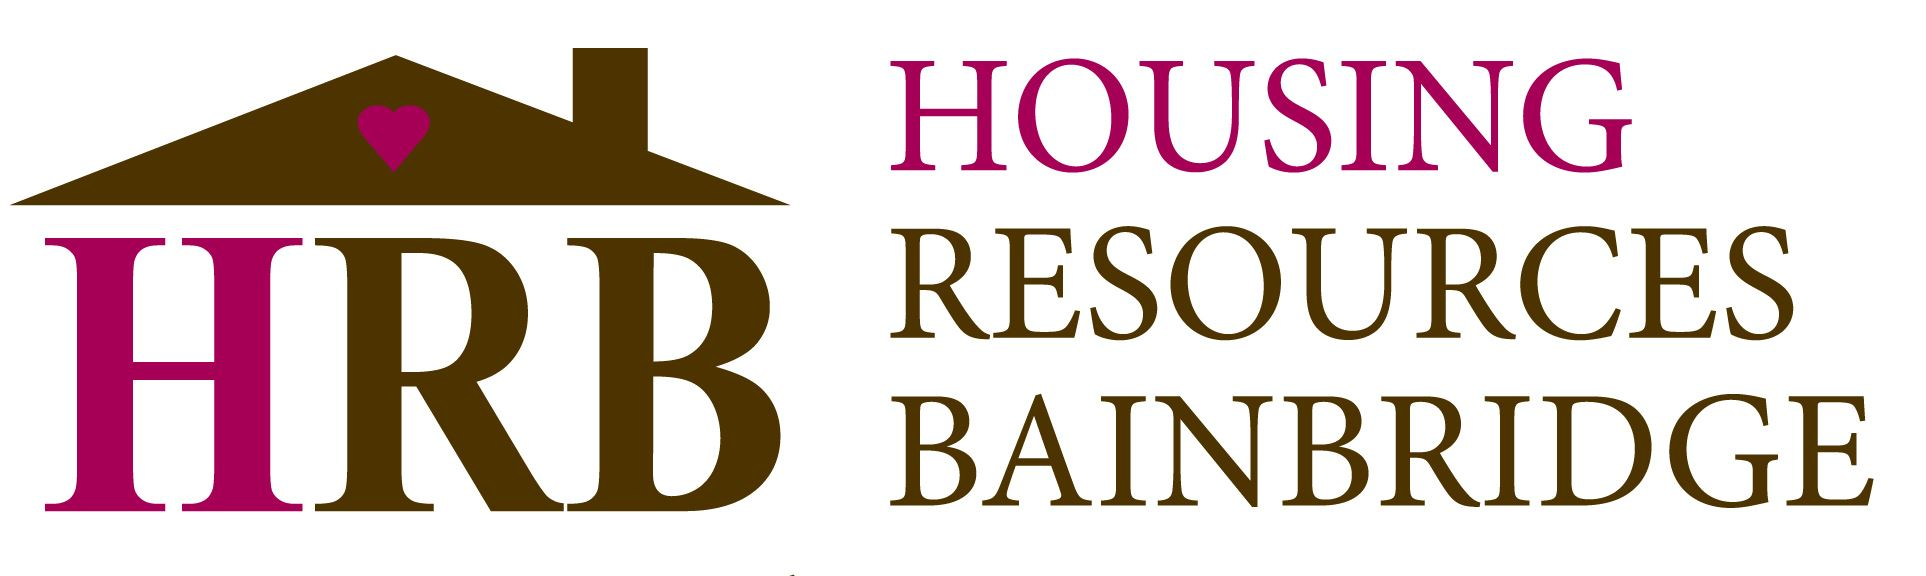 Housing Resources Bainbridge (HRB)